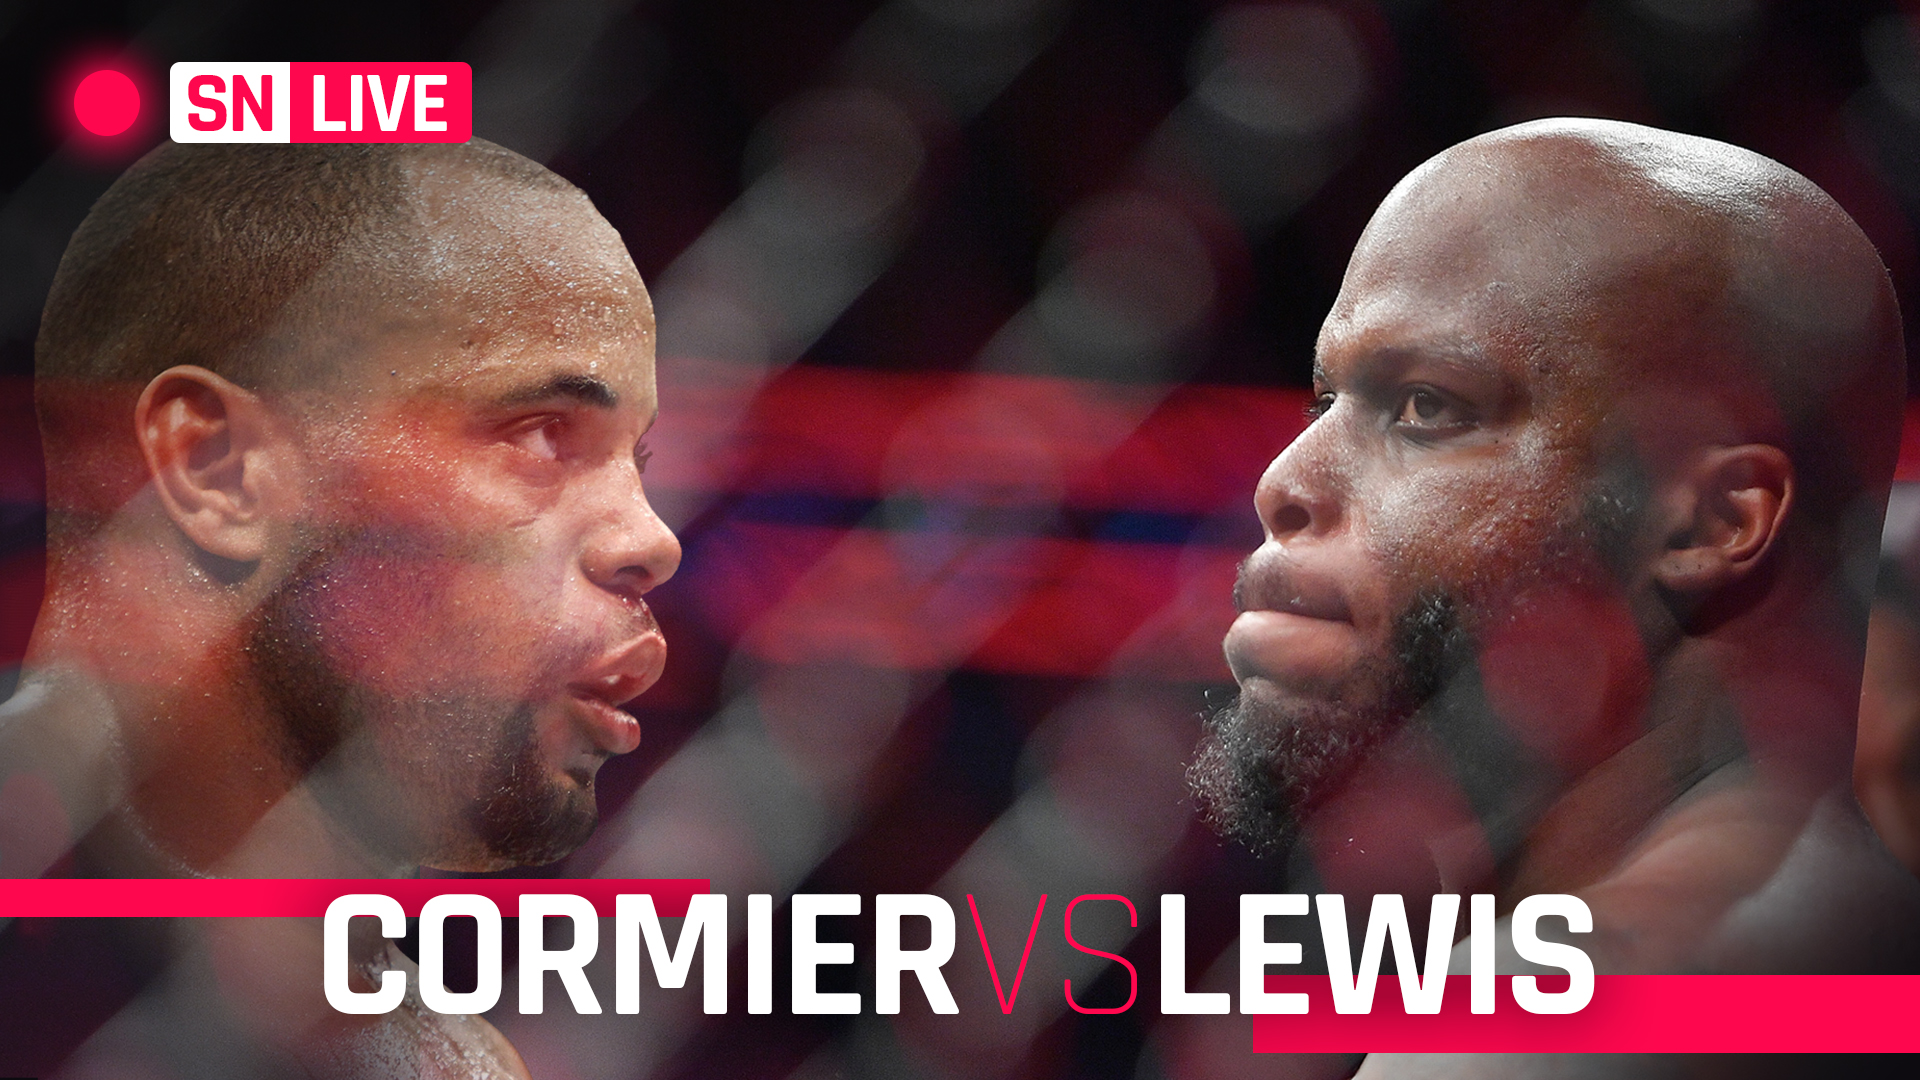 UFC 230 Cormier vs. Lewis results, live updates and round-by-round scoring